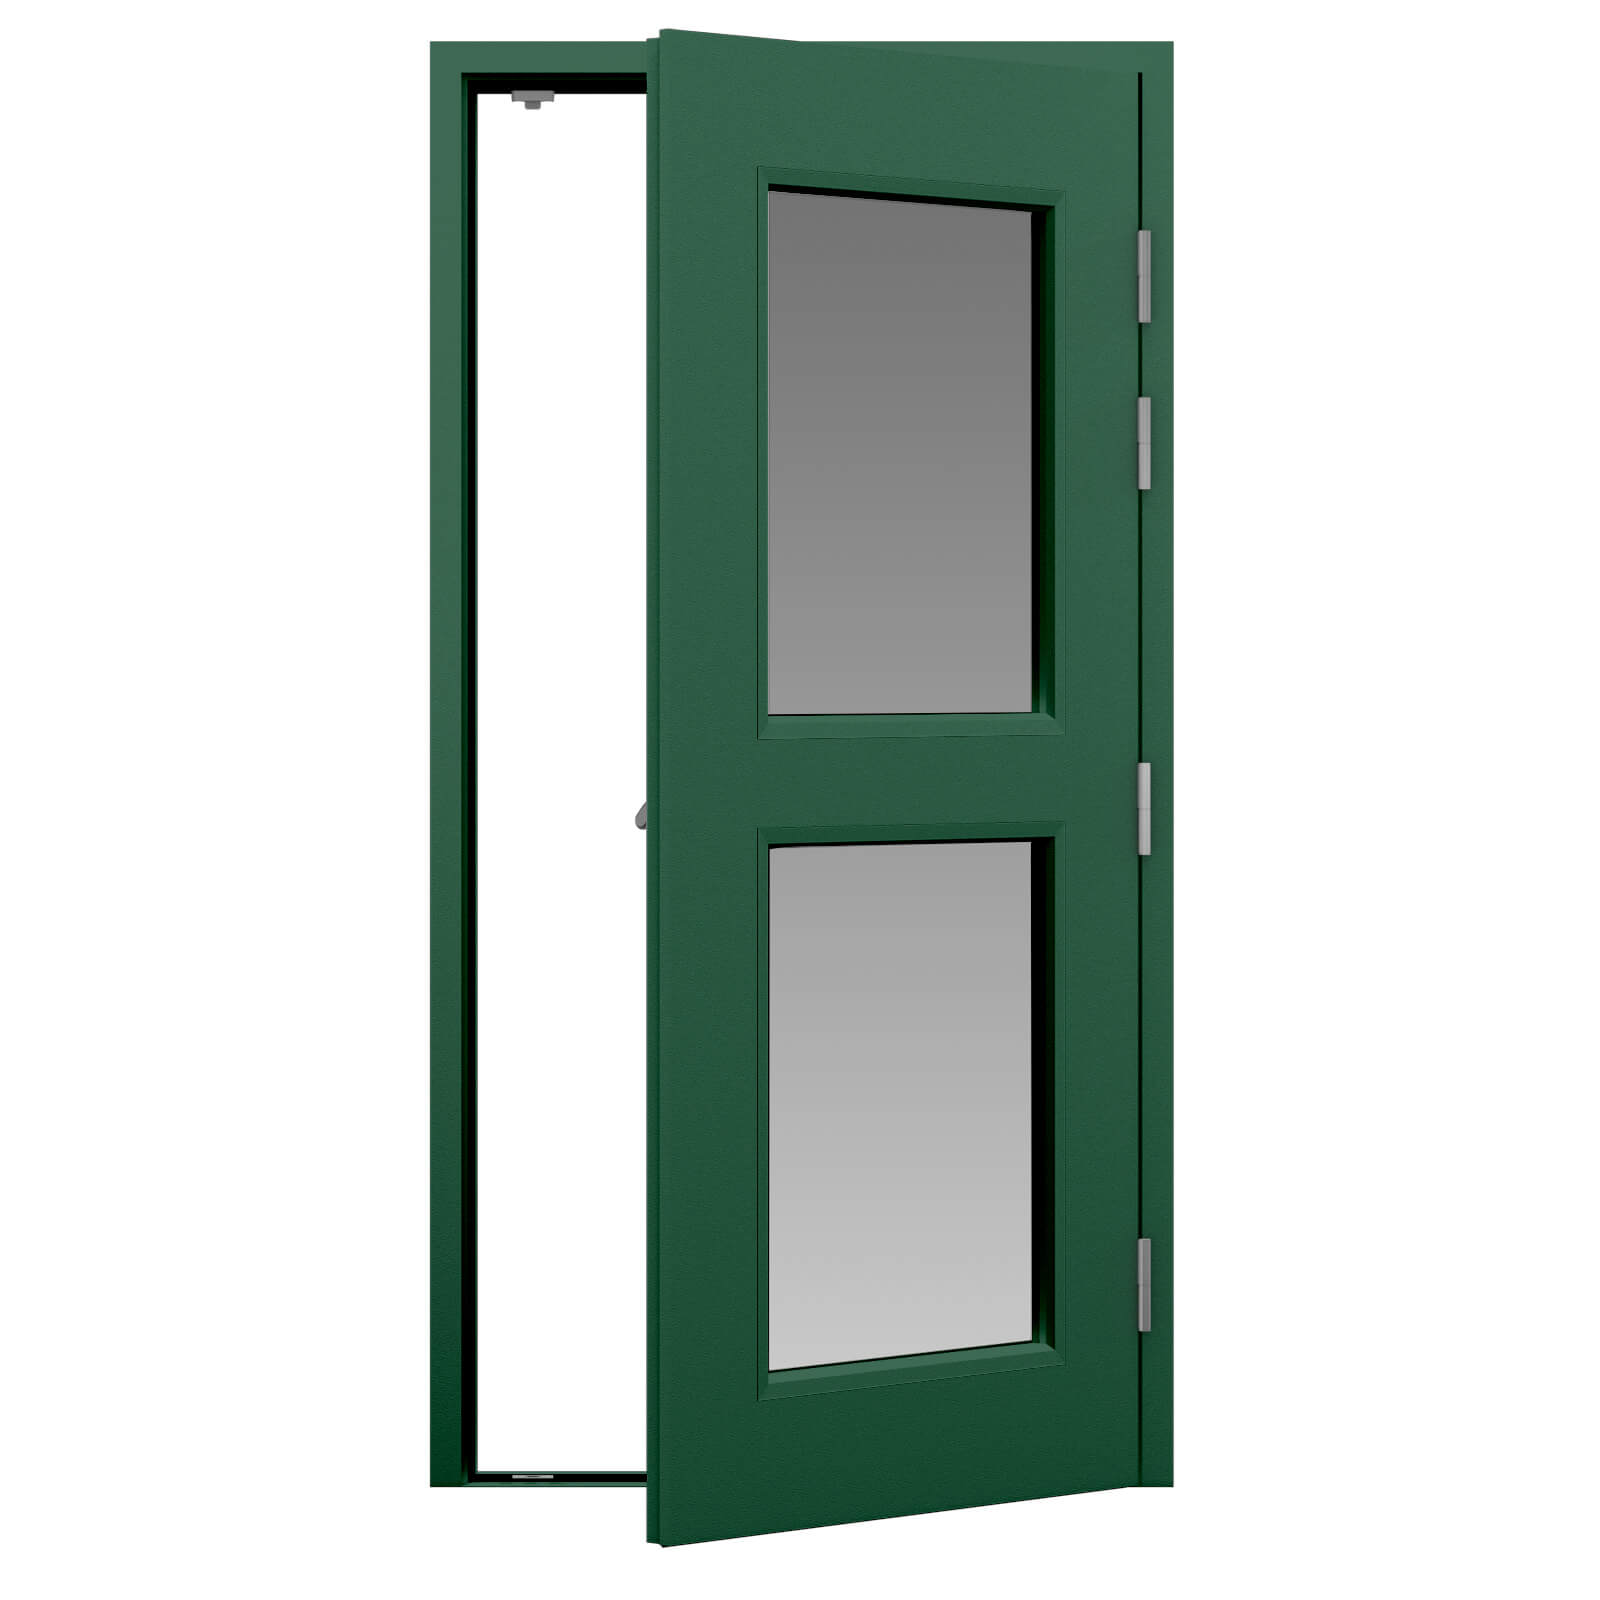 Green glazed fire exit door with 2 x half vision panels  sc 1 st  Lathamu0027s Steel Doors & Glazed Fire Exit Door (Security) | Lathamu0027s Steel Doors